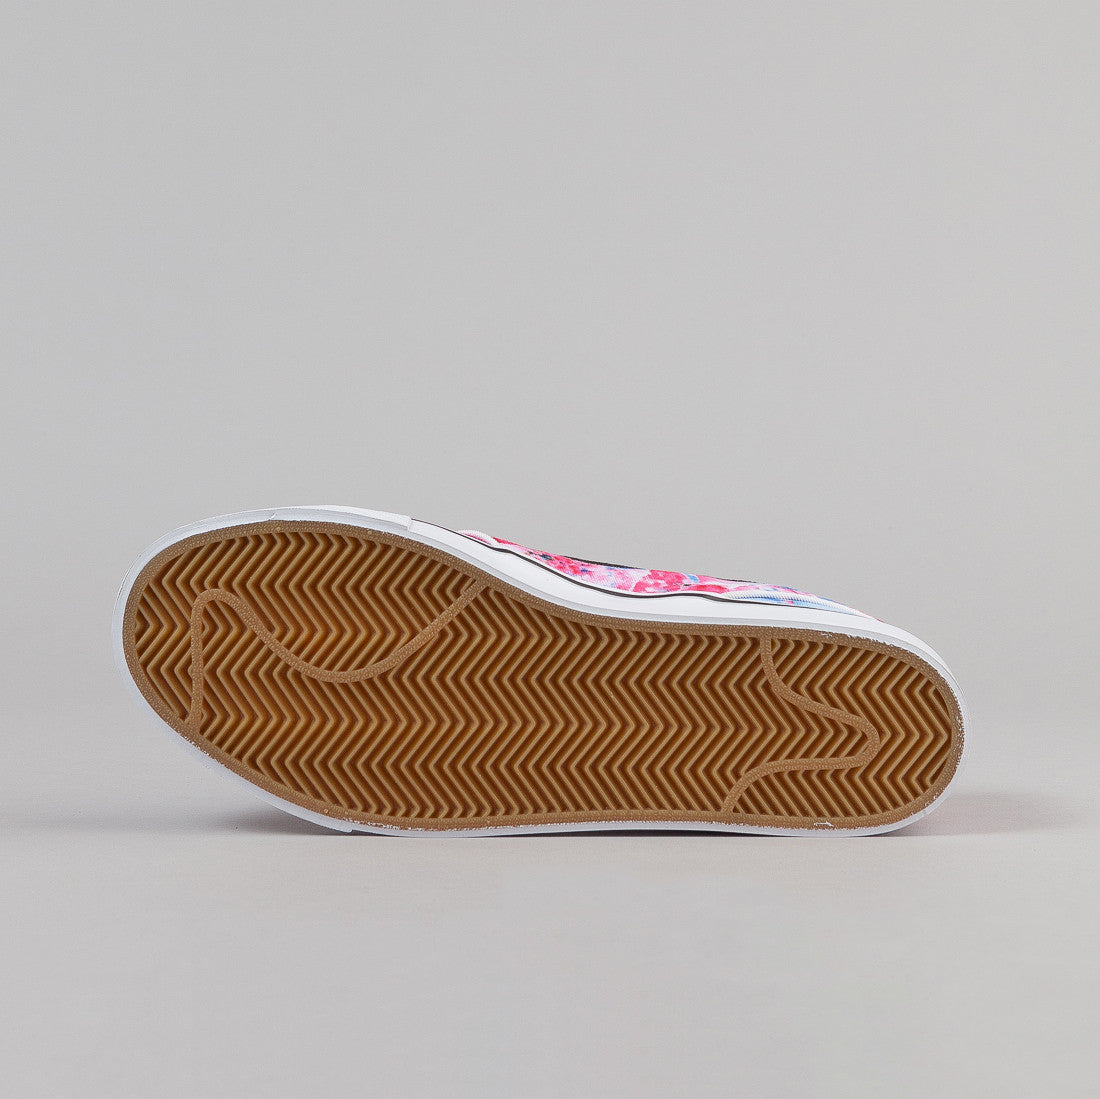 Nike SB Stefan Janoski Canvas Shoes - Dynamic Pink / White / Gum Light Brown / Black